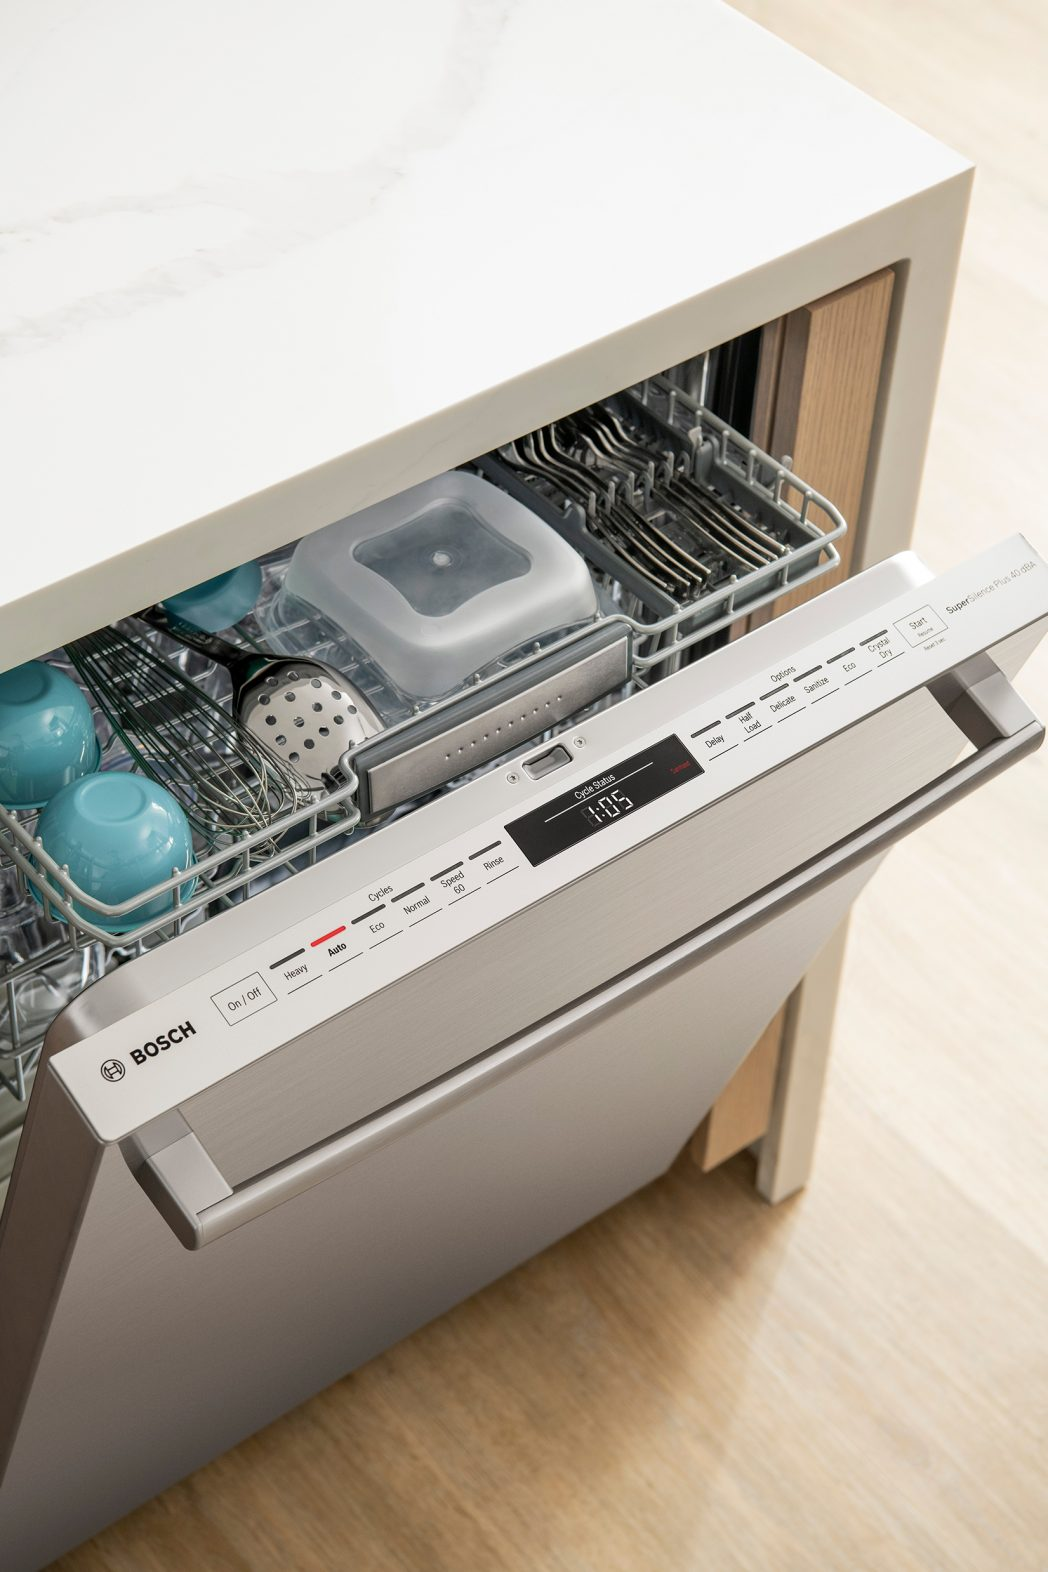 Bosch 800 Series dishwasher Crystal Dry